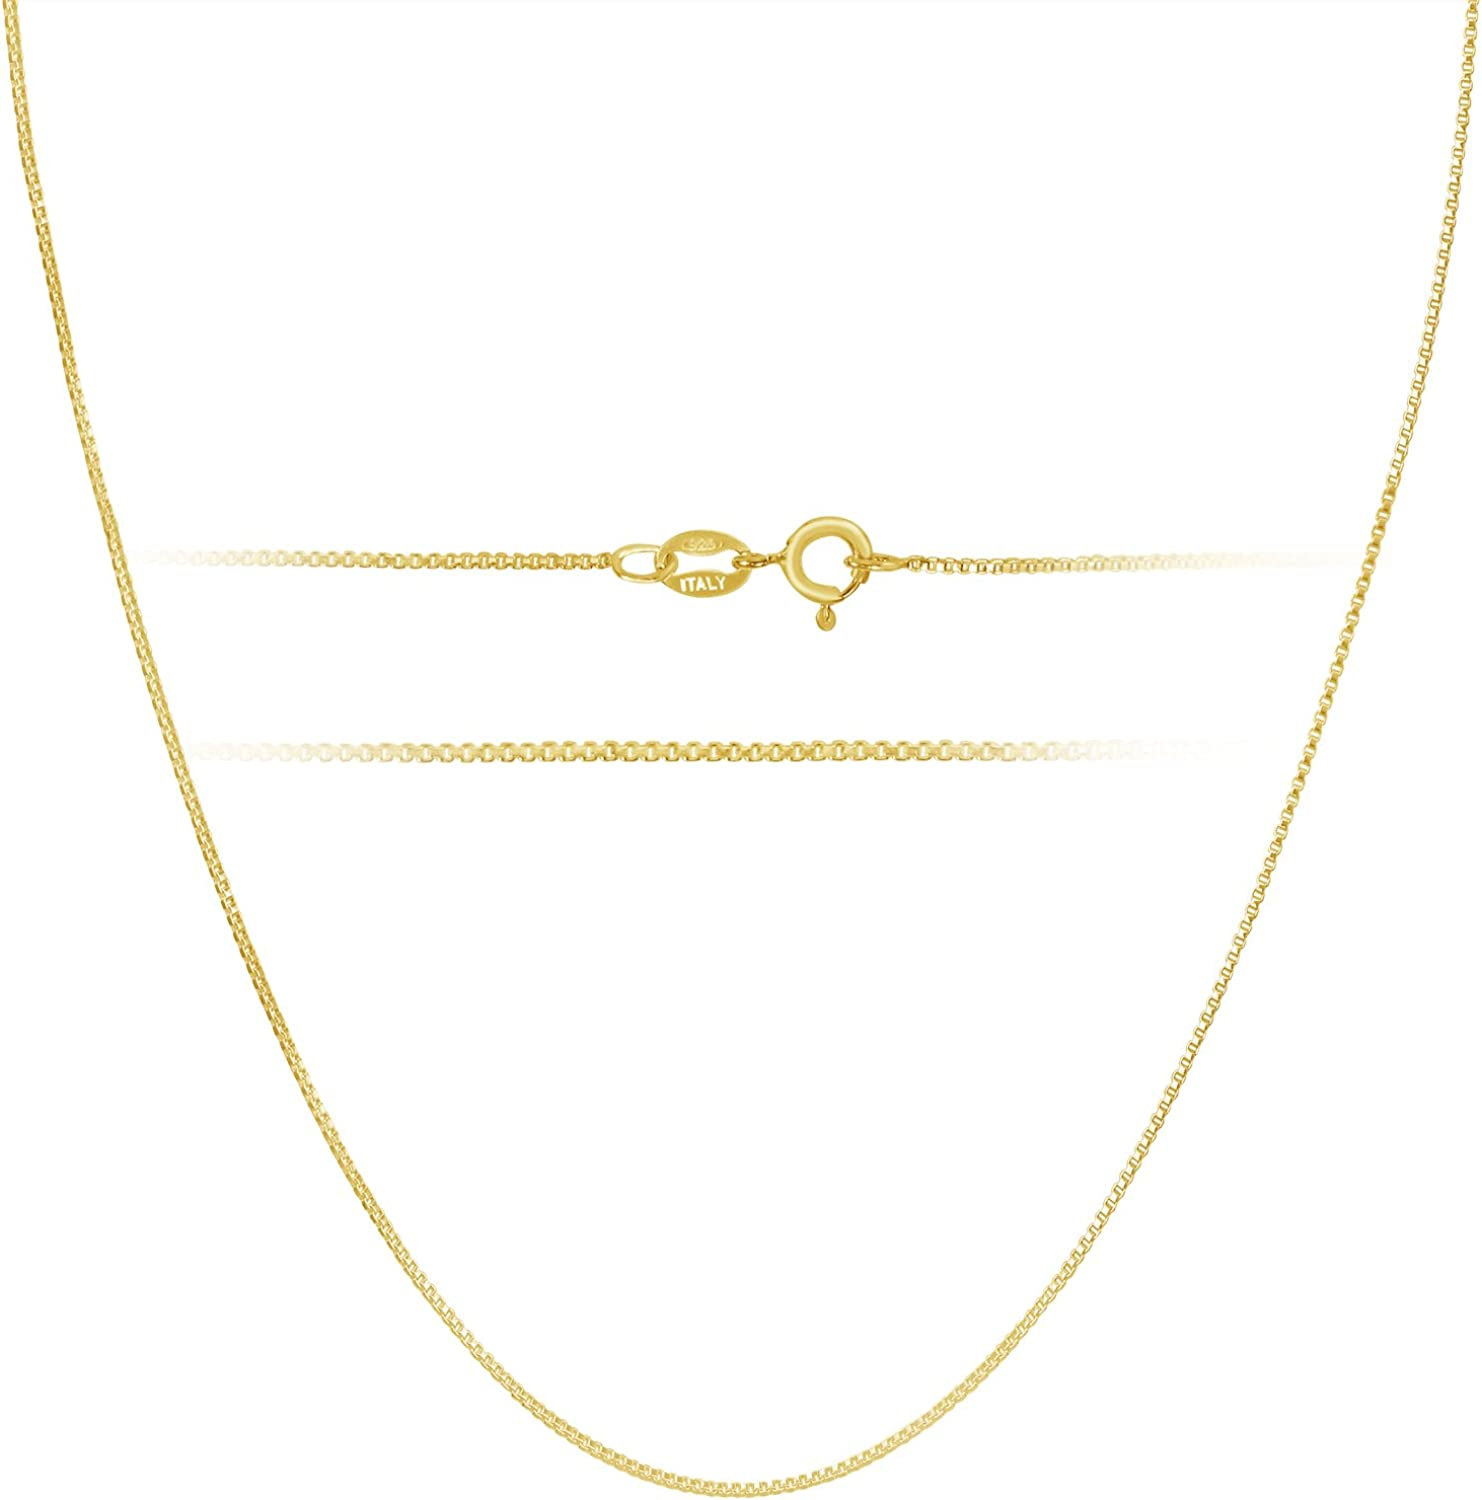 18k Gold over Sterling Silver 1mm Box Chain Necklace Made in Italy 14 Inch